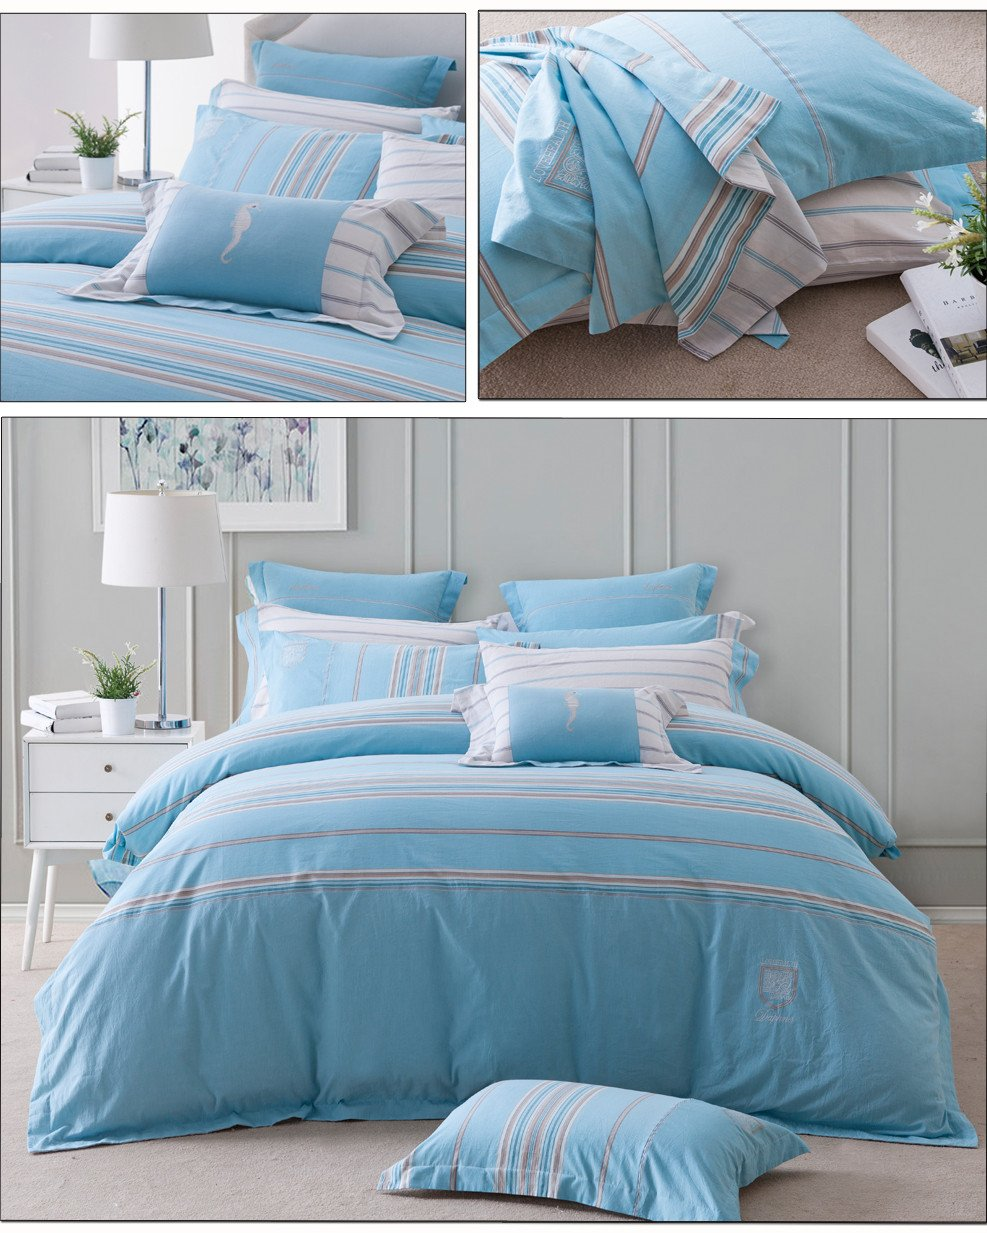 duvet bedding 100 cotton bedding sets Daphne manufacture